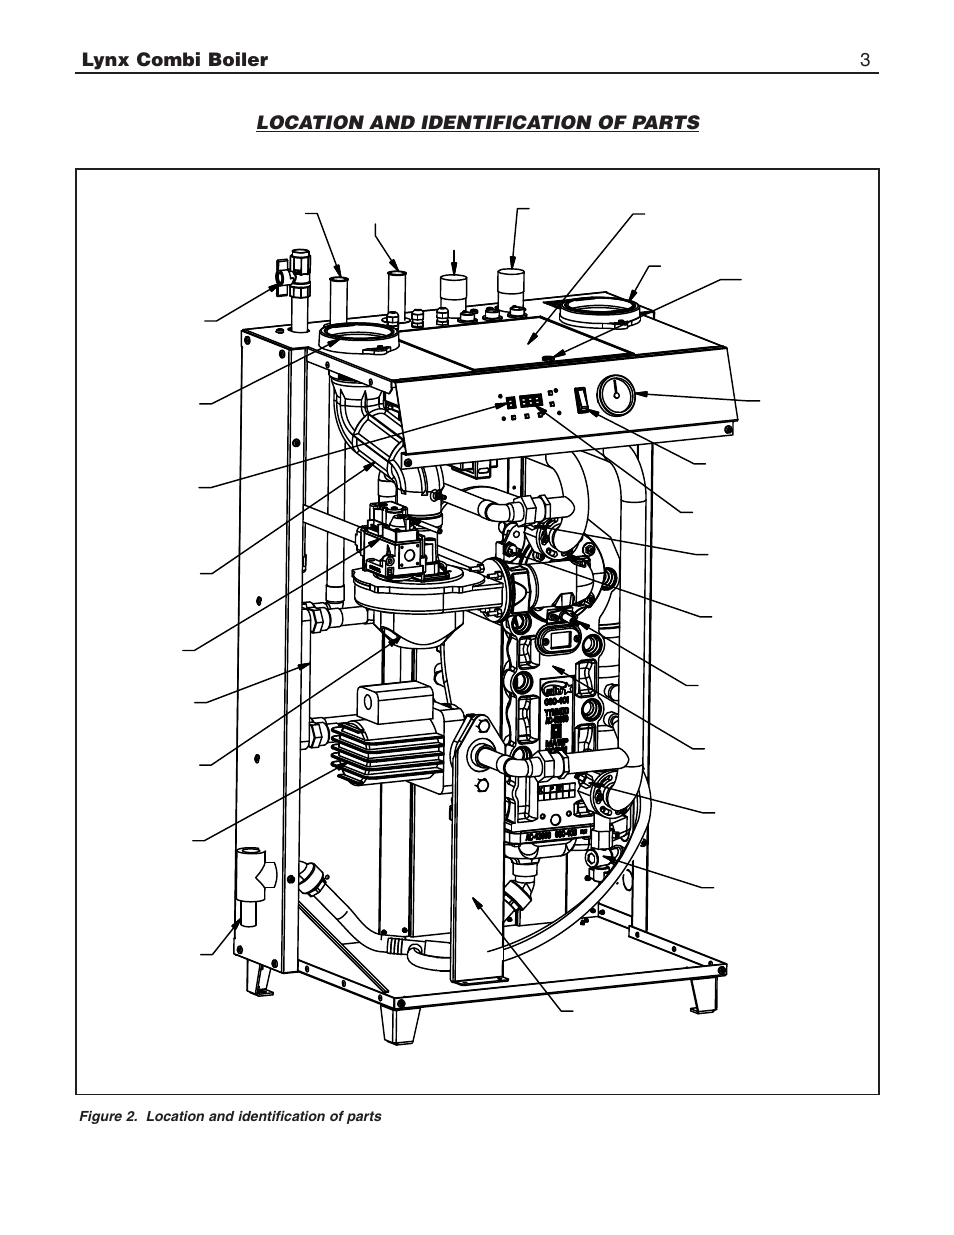 Lynx combi boiler 3, Location and identification of parts | Slant ...